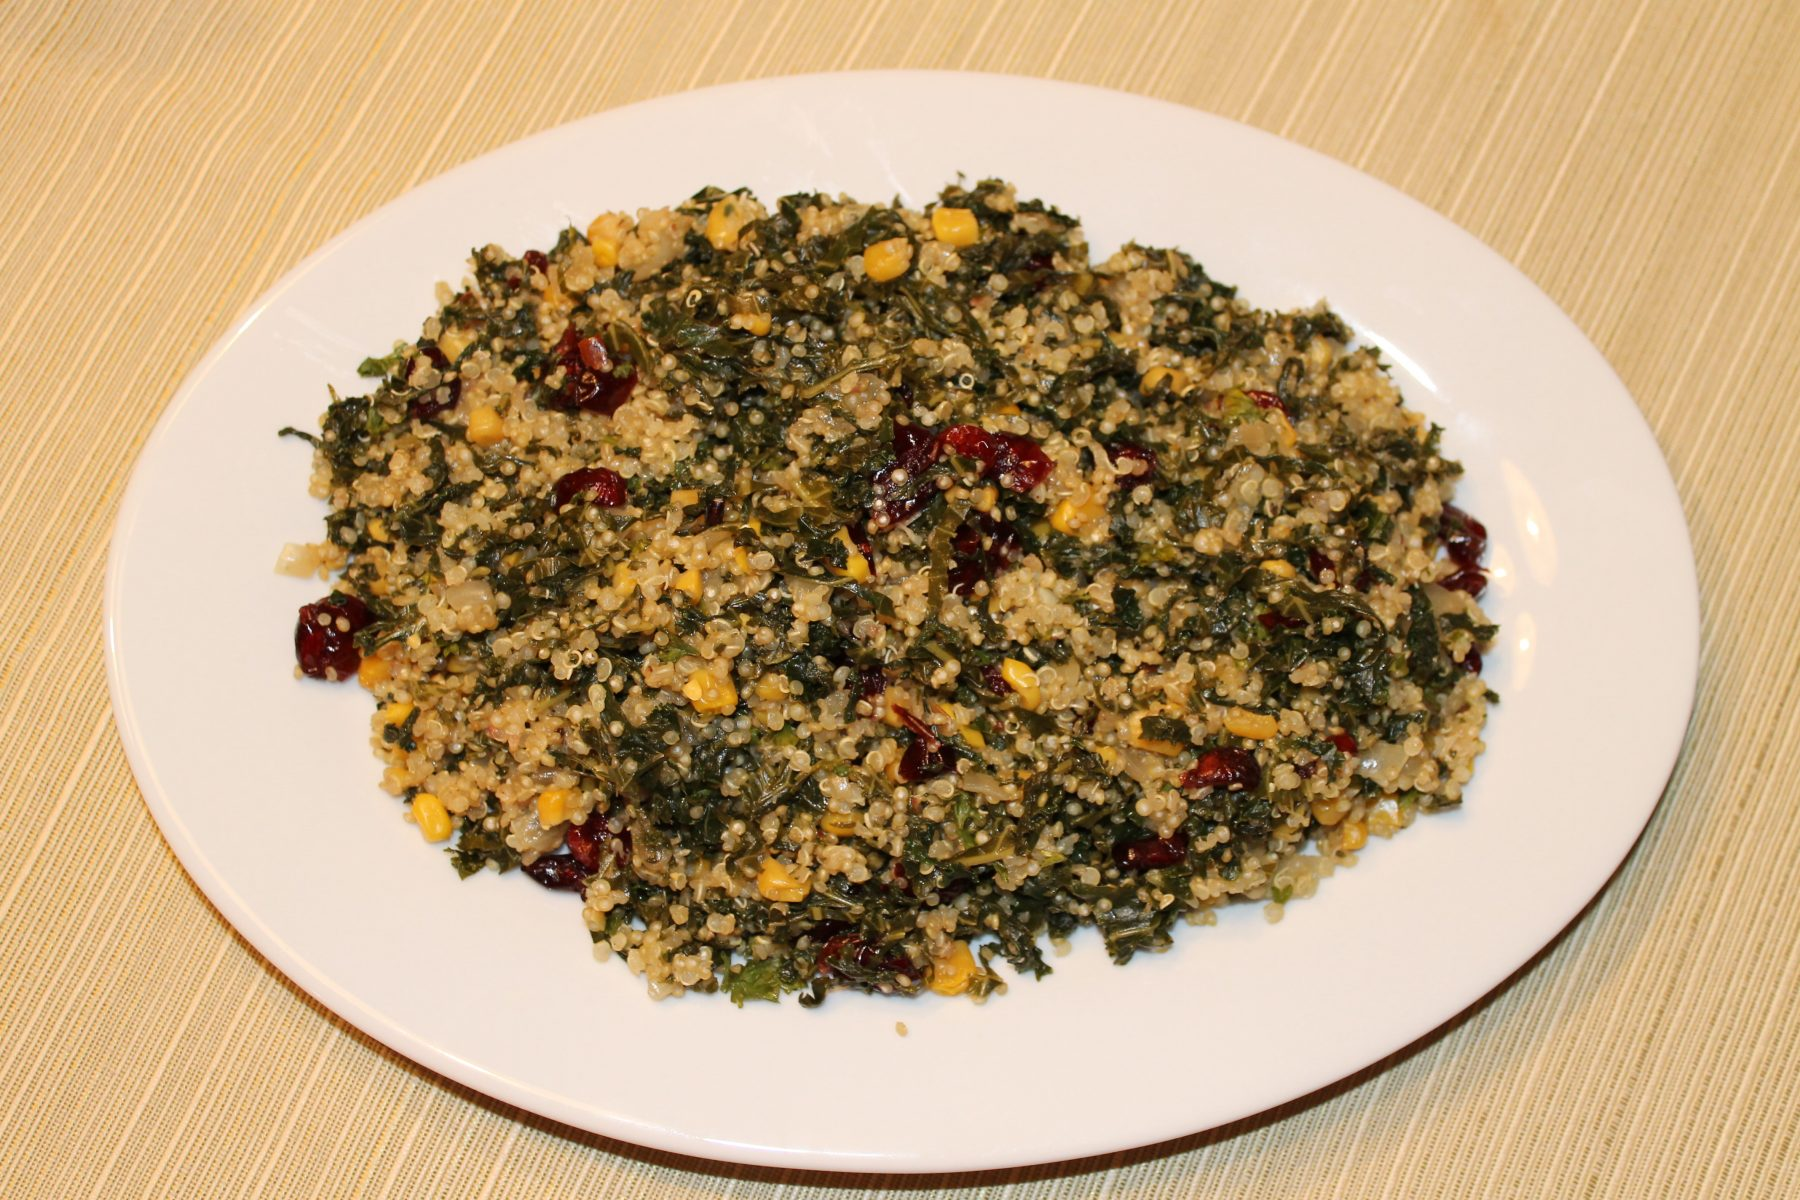 Vegan Recipe - Quinoa With Kale And Walnuts